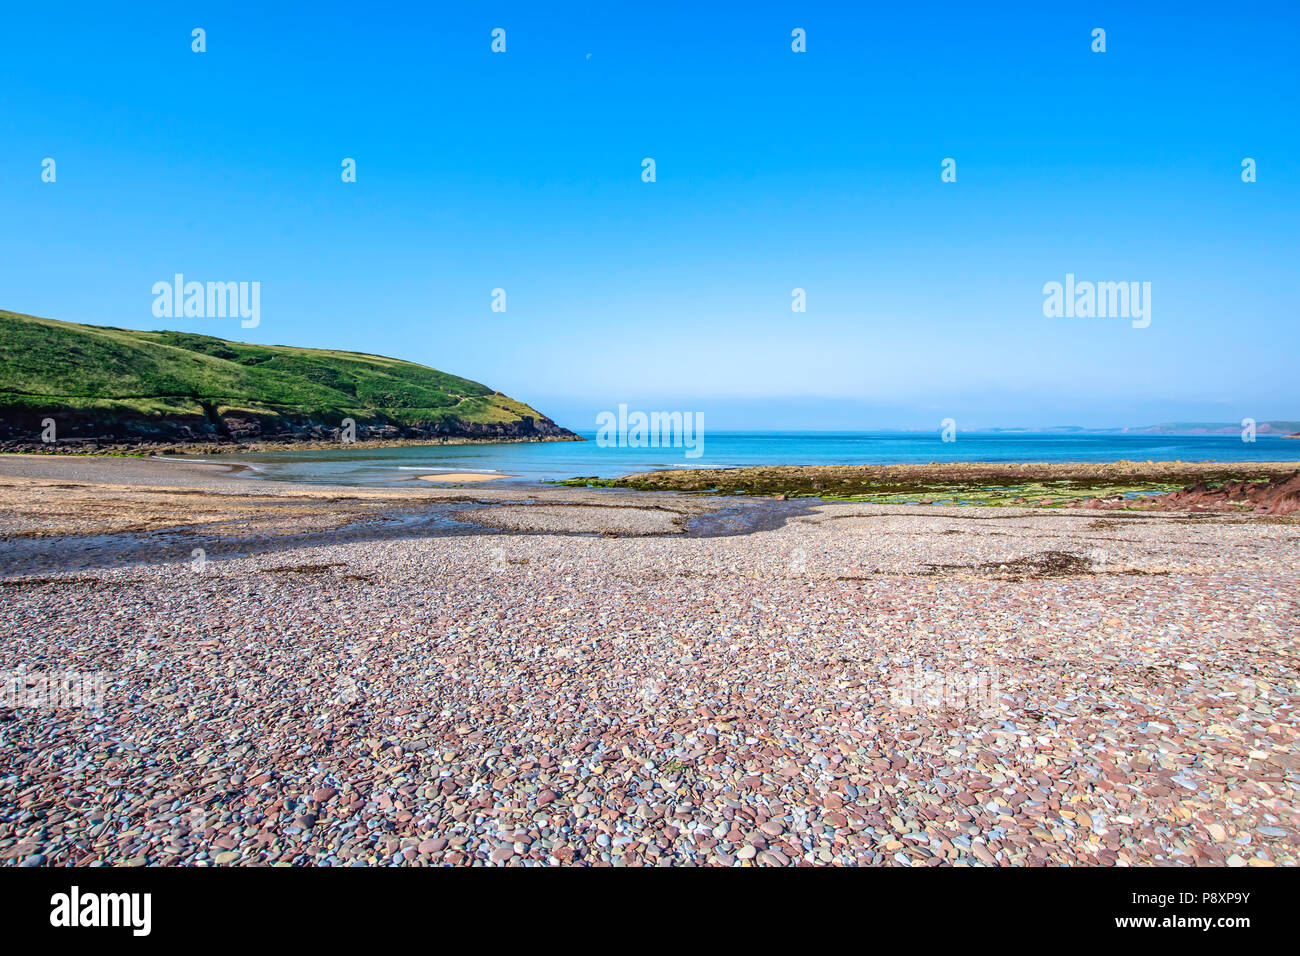 Beautiful scenery of dramatic Pembrokeshire coastline,South Wales, Uk in summer.Scenic landscape of british coast.Pebbles on shore of calm bay. Stock Photo